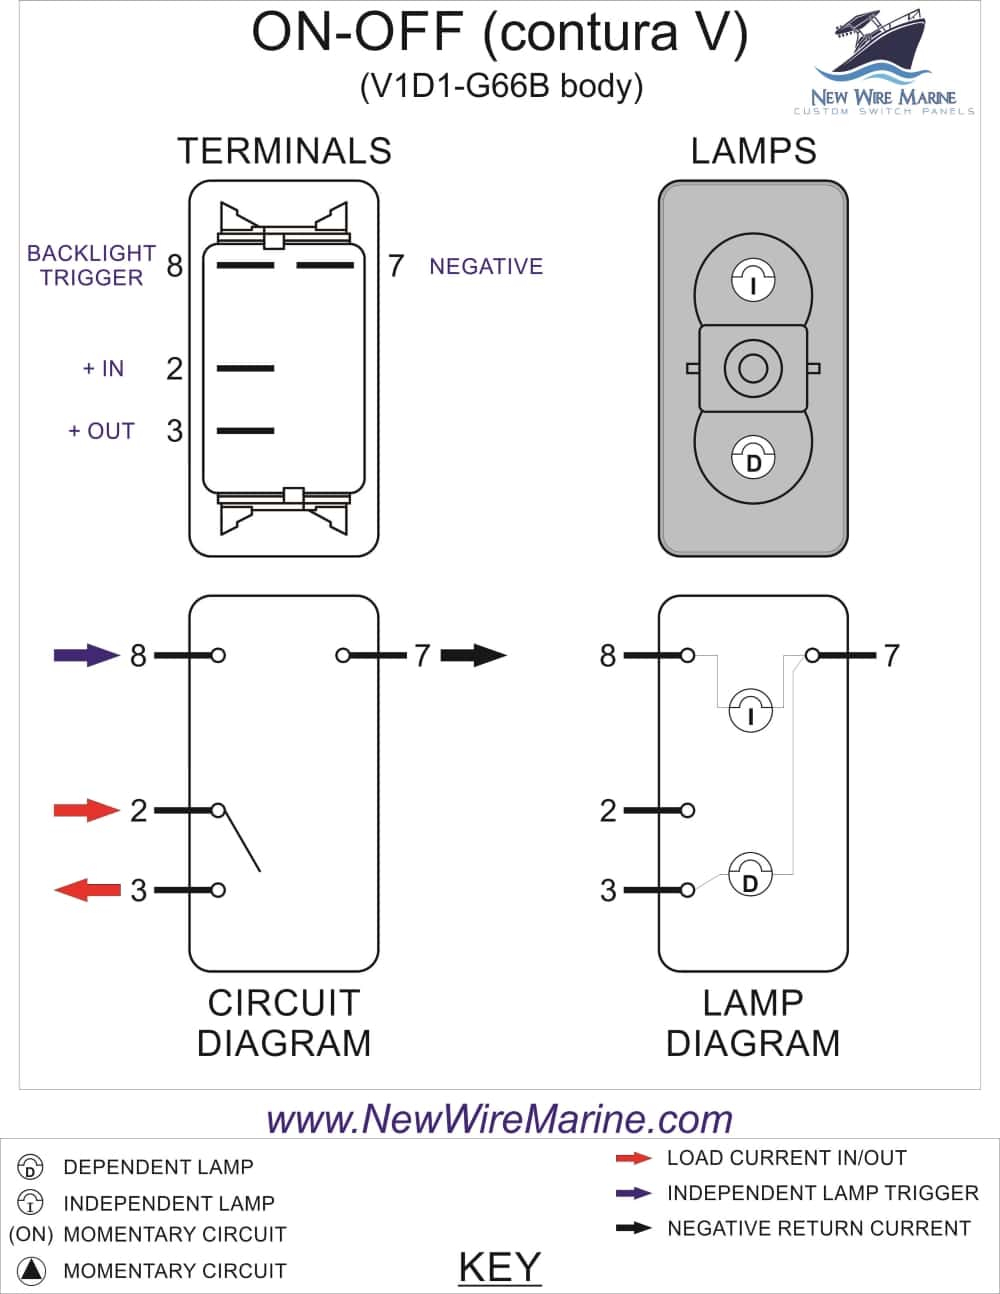 Rocker Switch Wiring Diagrams | New Wire Marine - Carling Rocker Switch Wiring Diagram